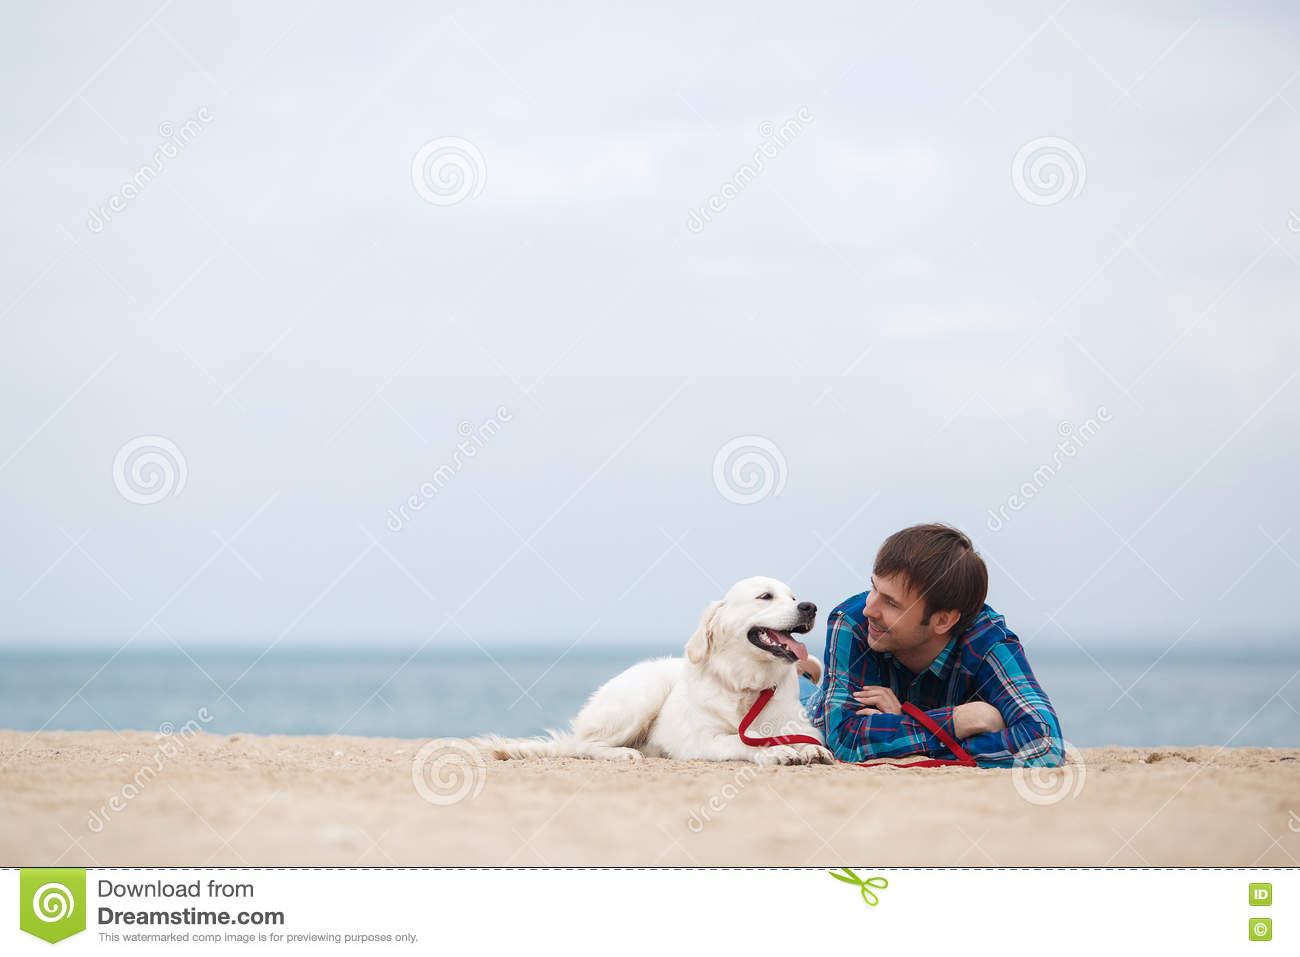 Spring portrait of a young man with a dog on the beach